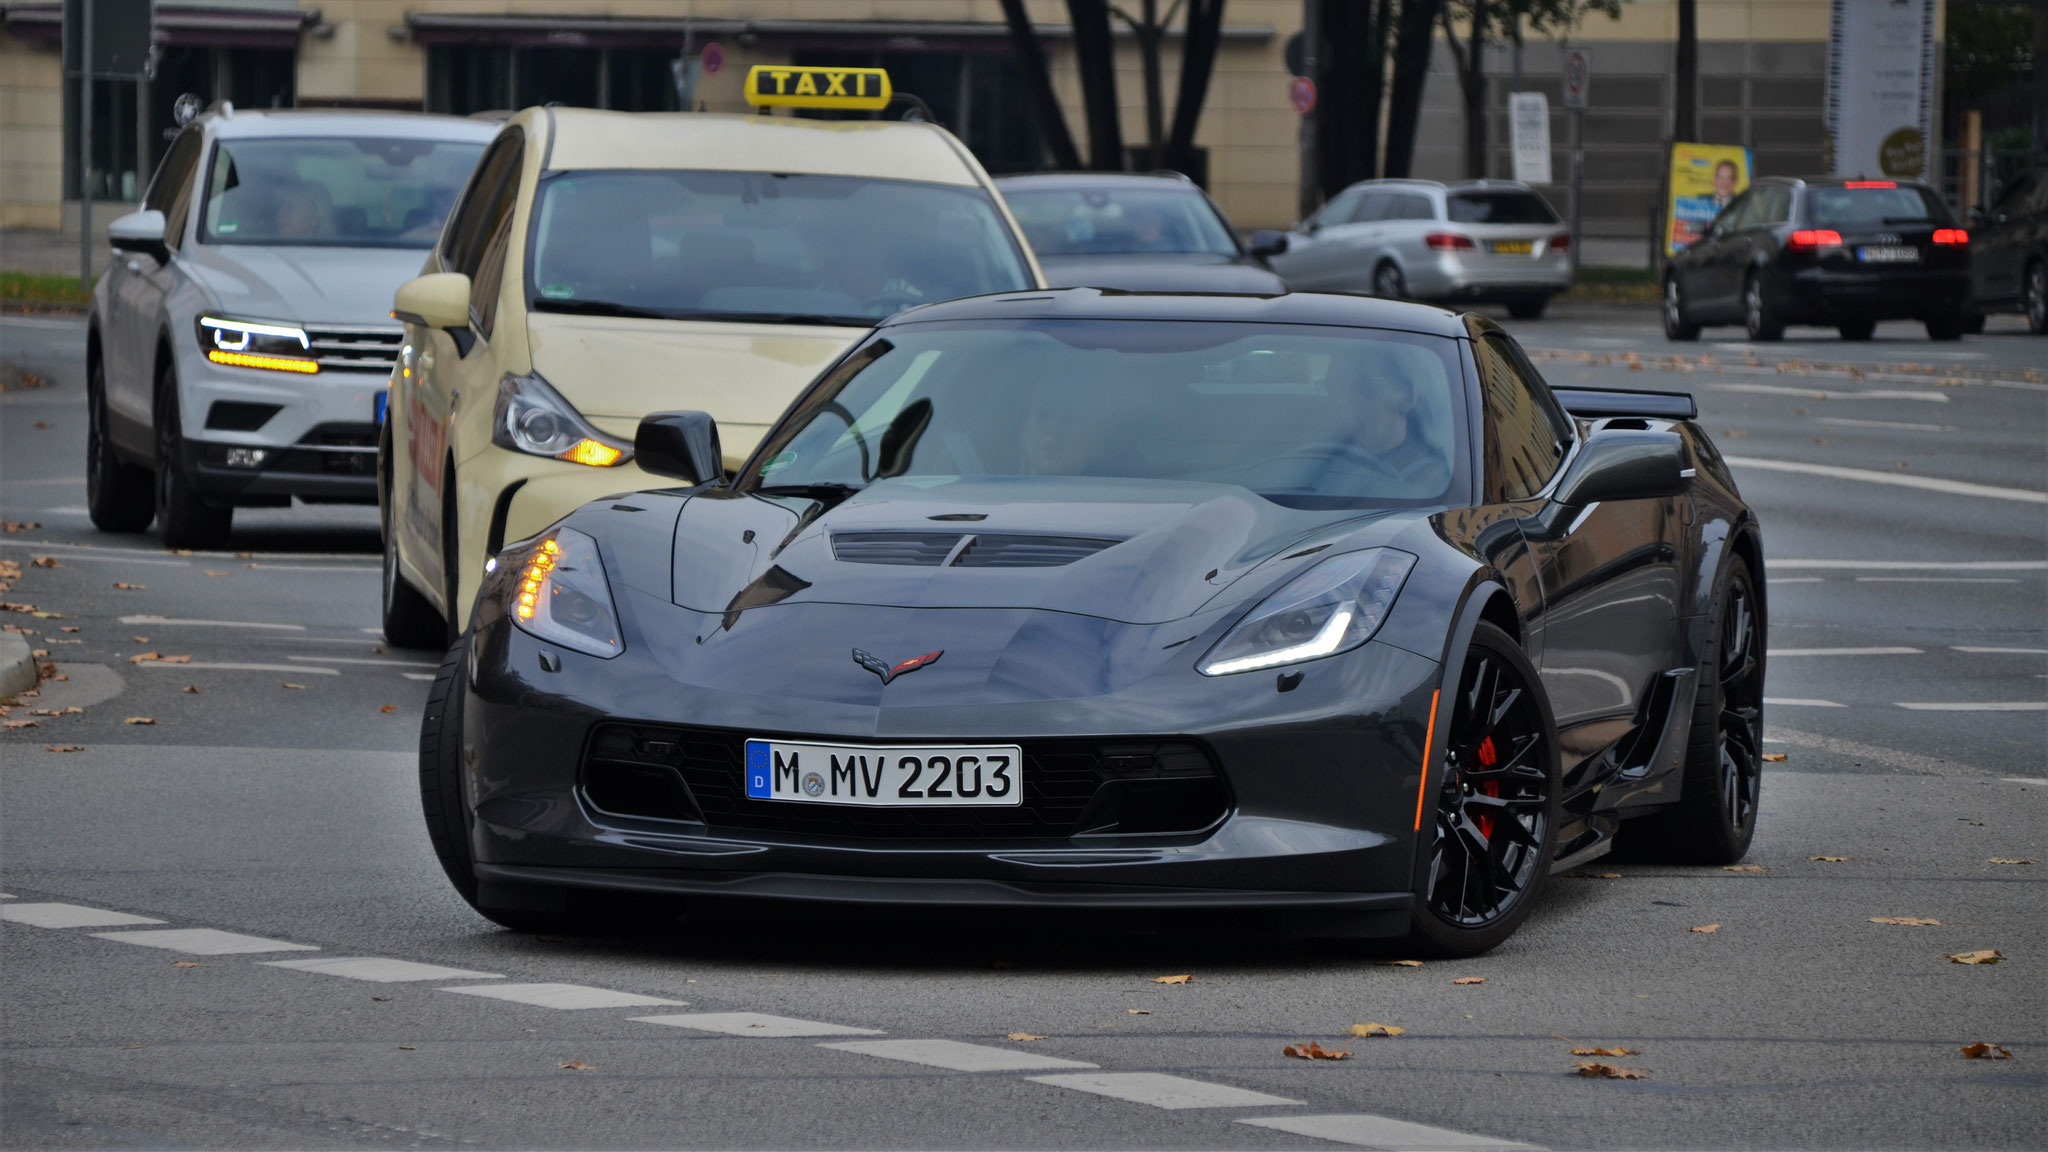 Chevrolet Corvette C7 Z06 - M-MV-2203